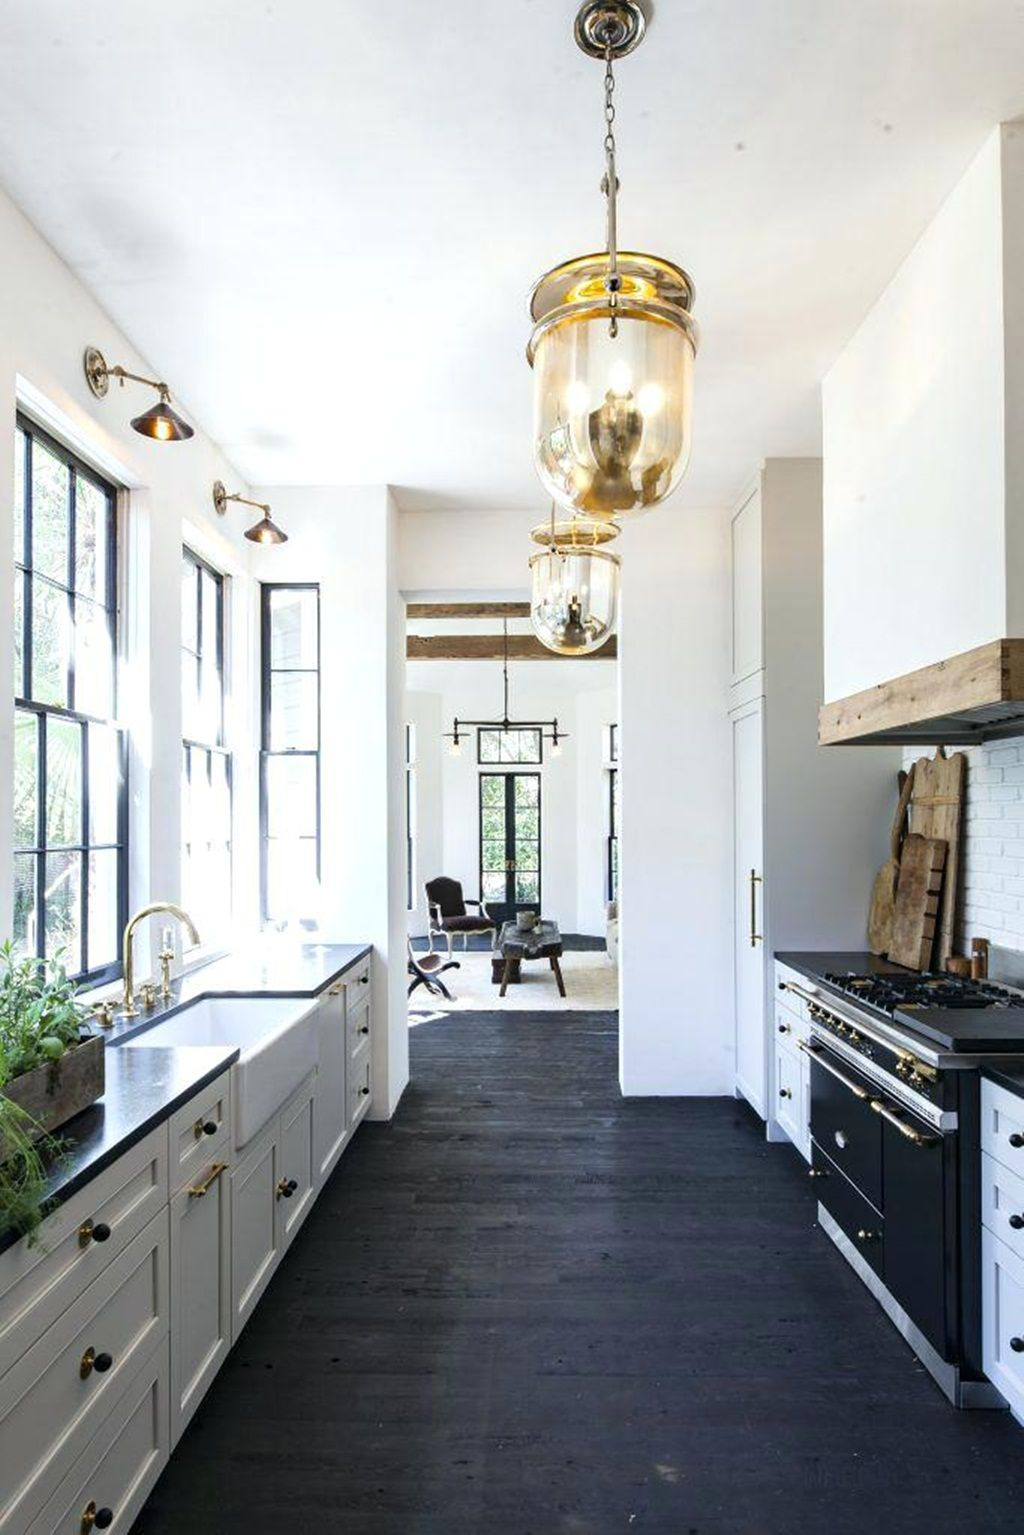 2019 remodeling ideas for small kitchens with luxury and functionality kitchen remodel small on kitchen remodel kitchen designs id=74787